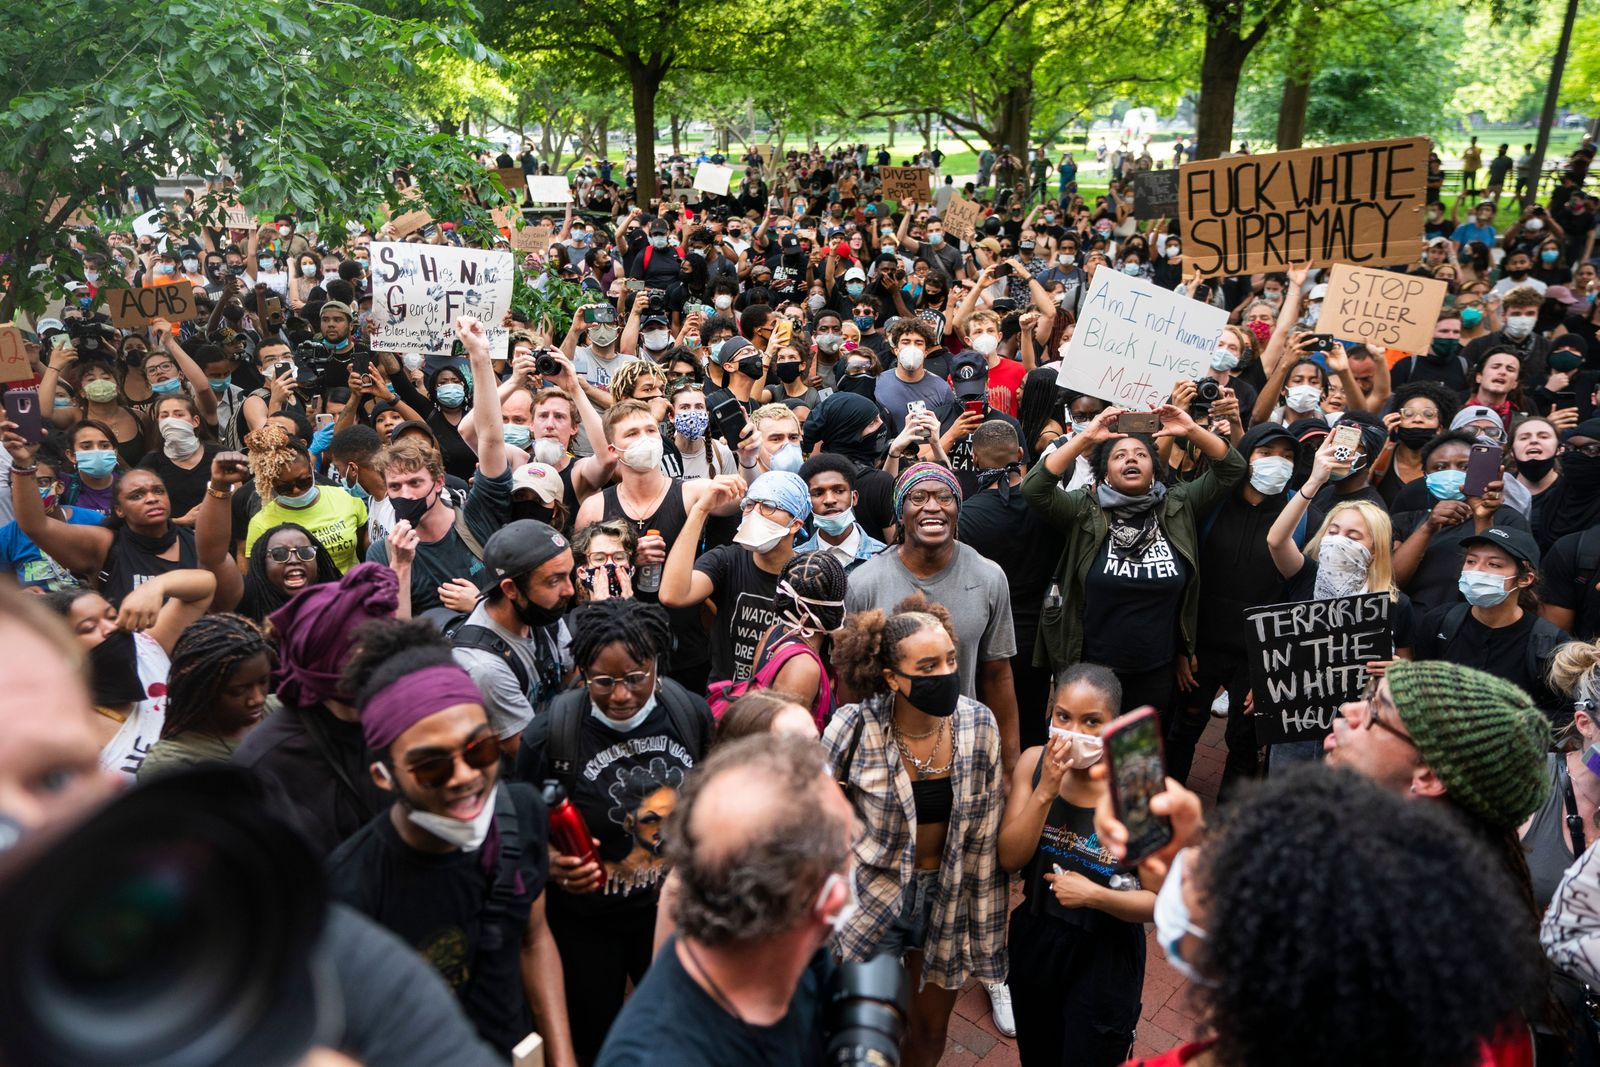 Police abuse protest in wake of George Floyd death, in Washington, USA - 29 May 2020